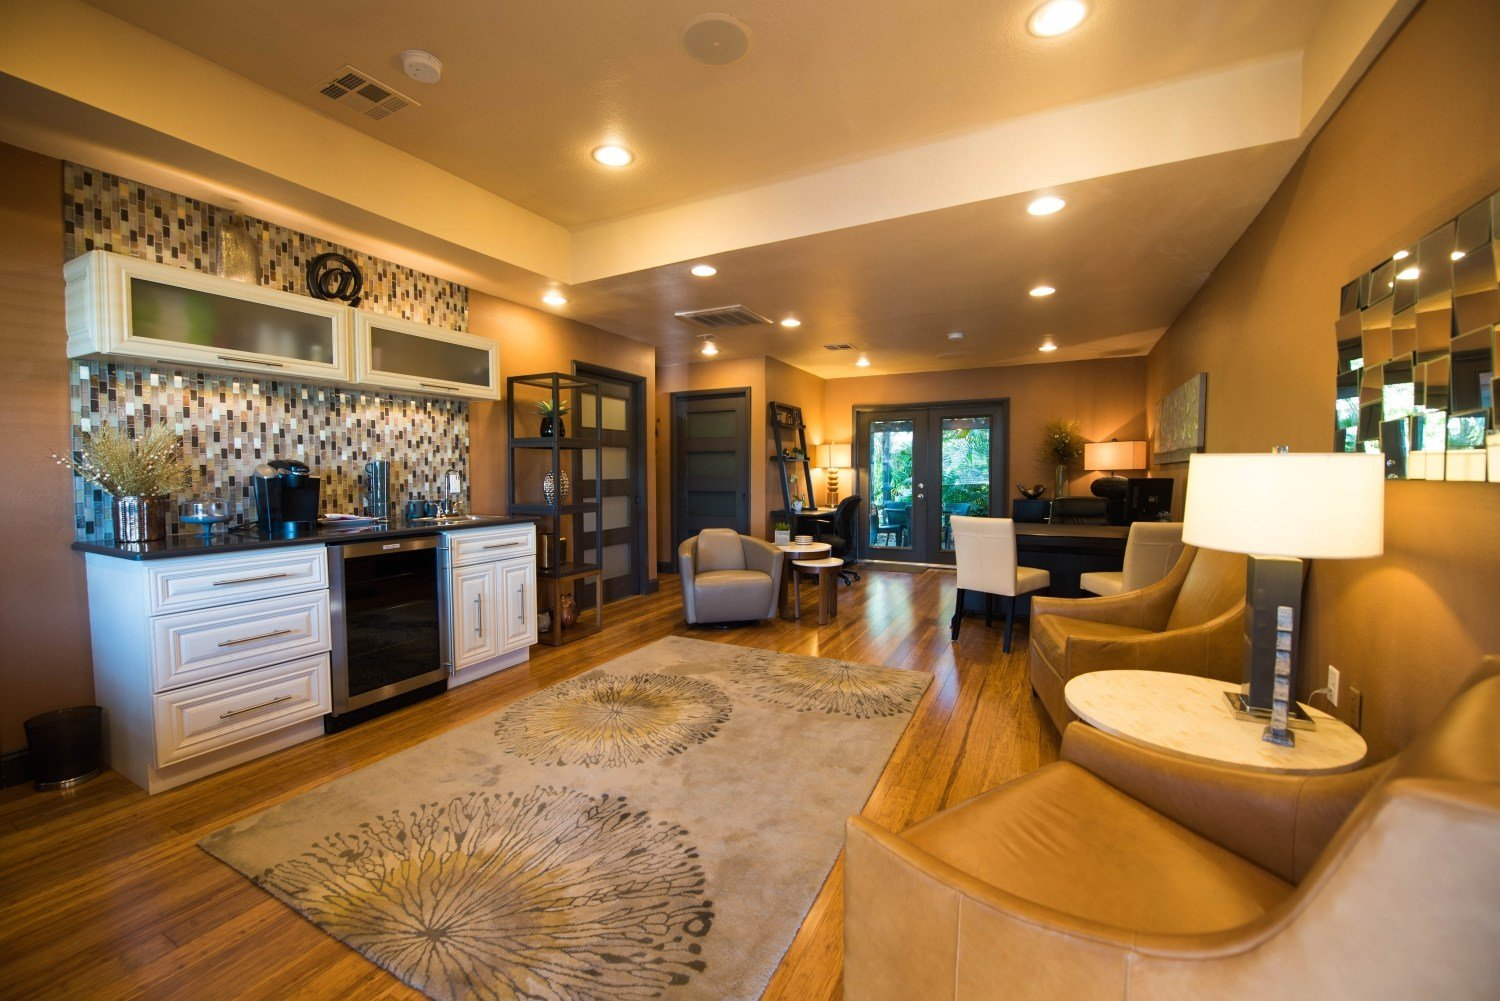 best one bedroom apartments near usf tampa with pictures